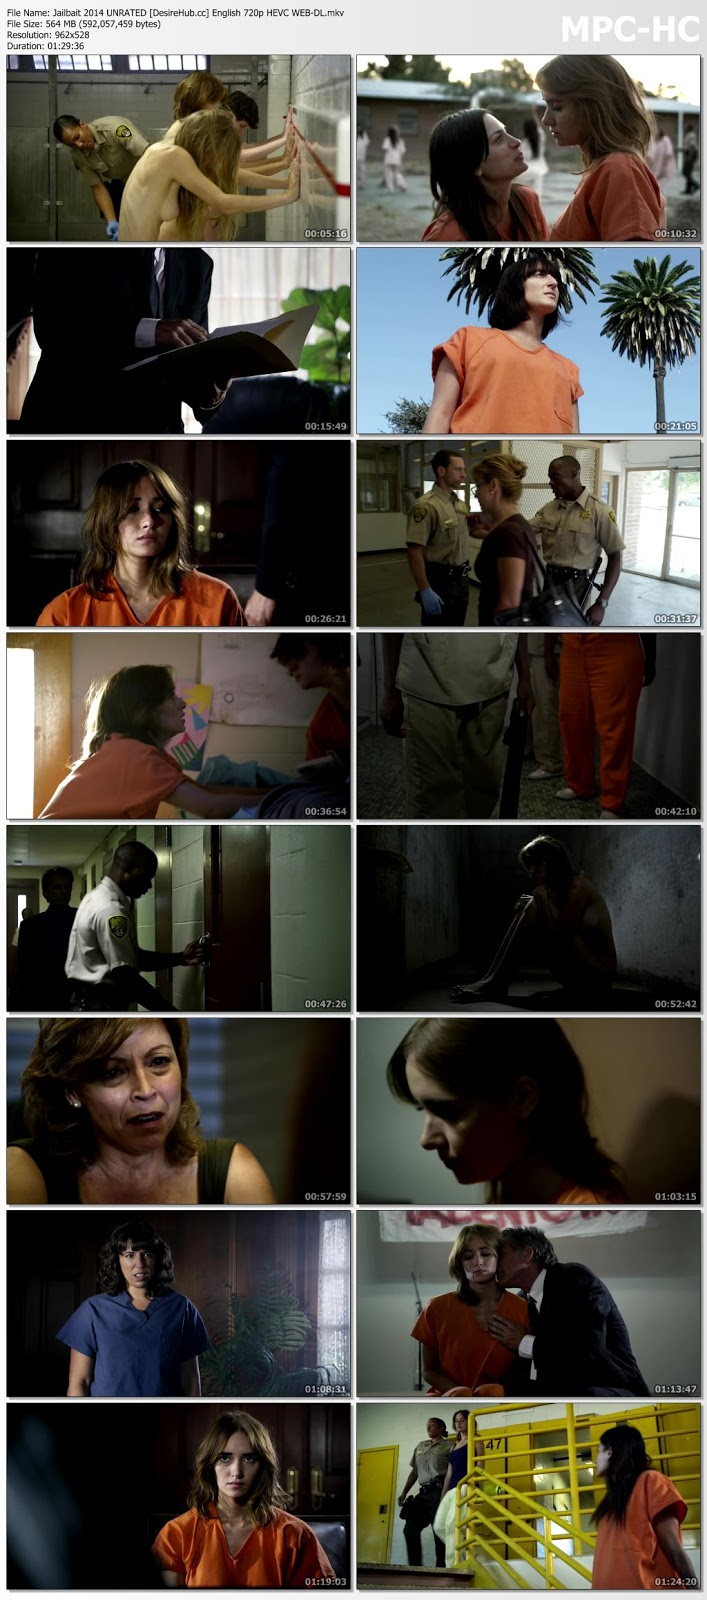 18+ Jailbait 2014 UNRATED English 720p HEVC WEB-DL 550MB Desirehub